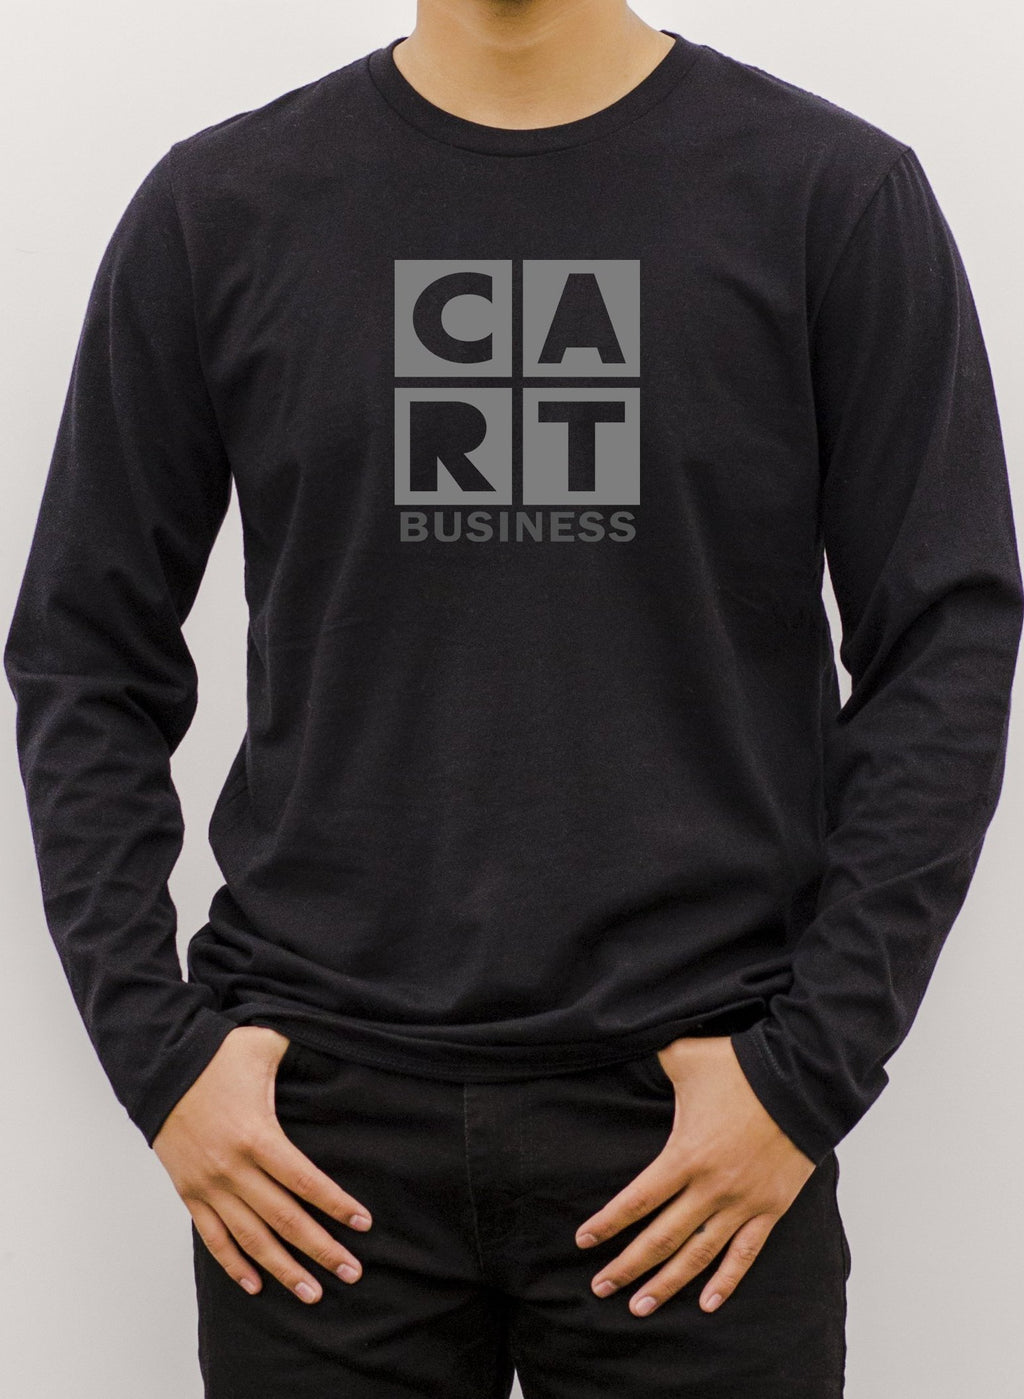 Long Sleeve T-Shirt (Unisex fit) - Business black/grey Logo